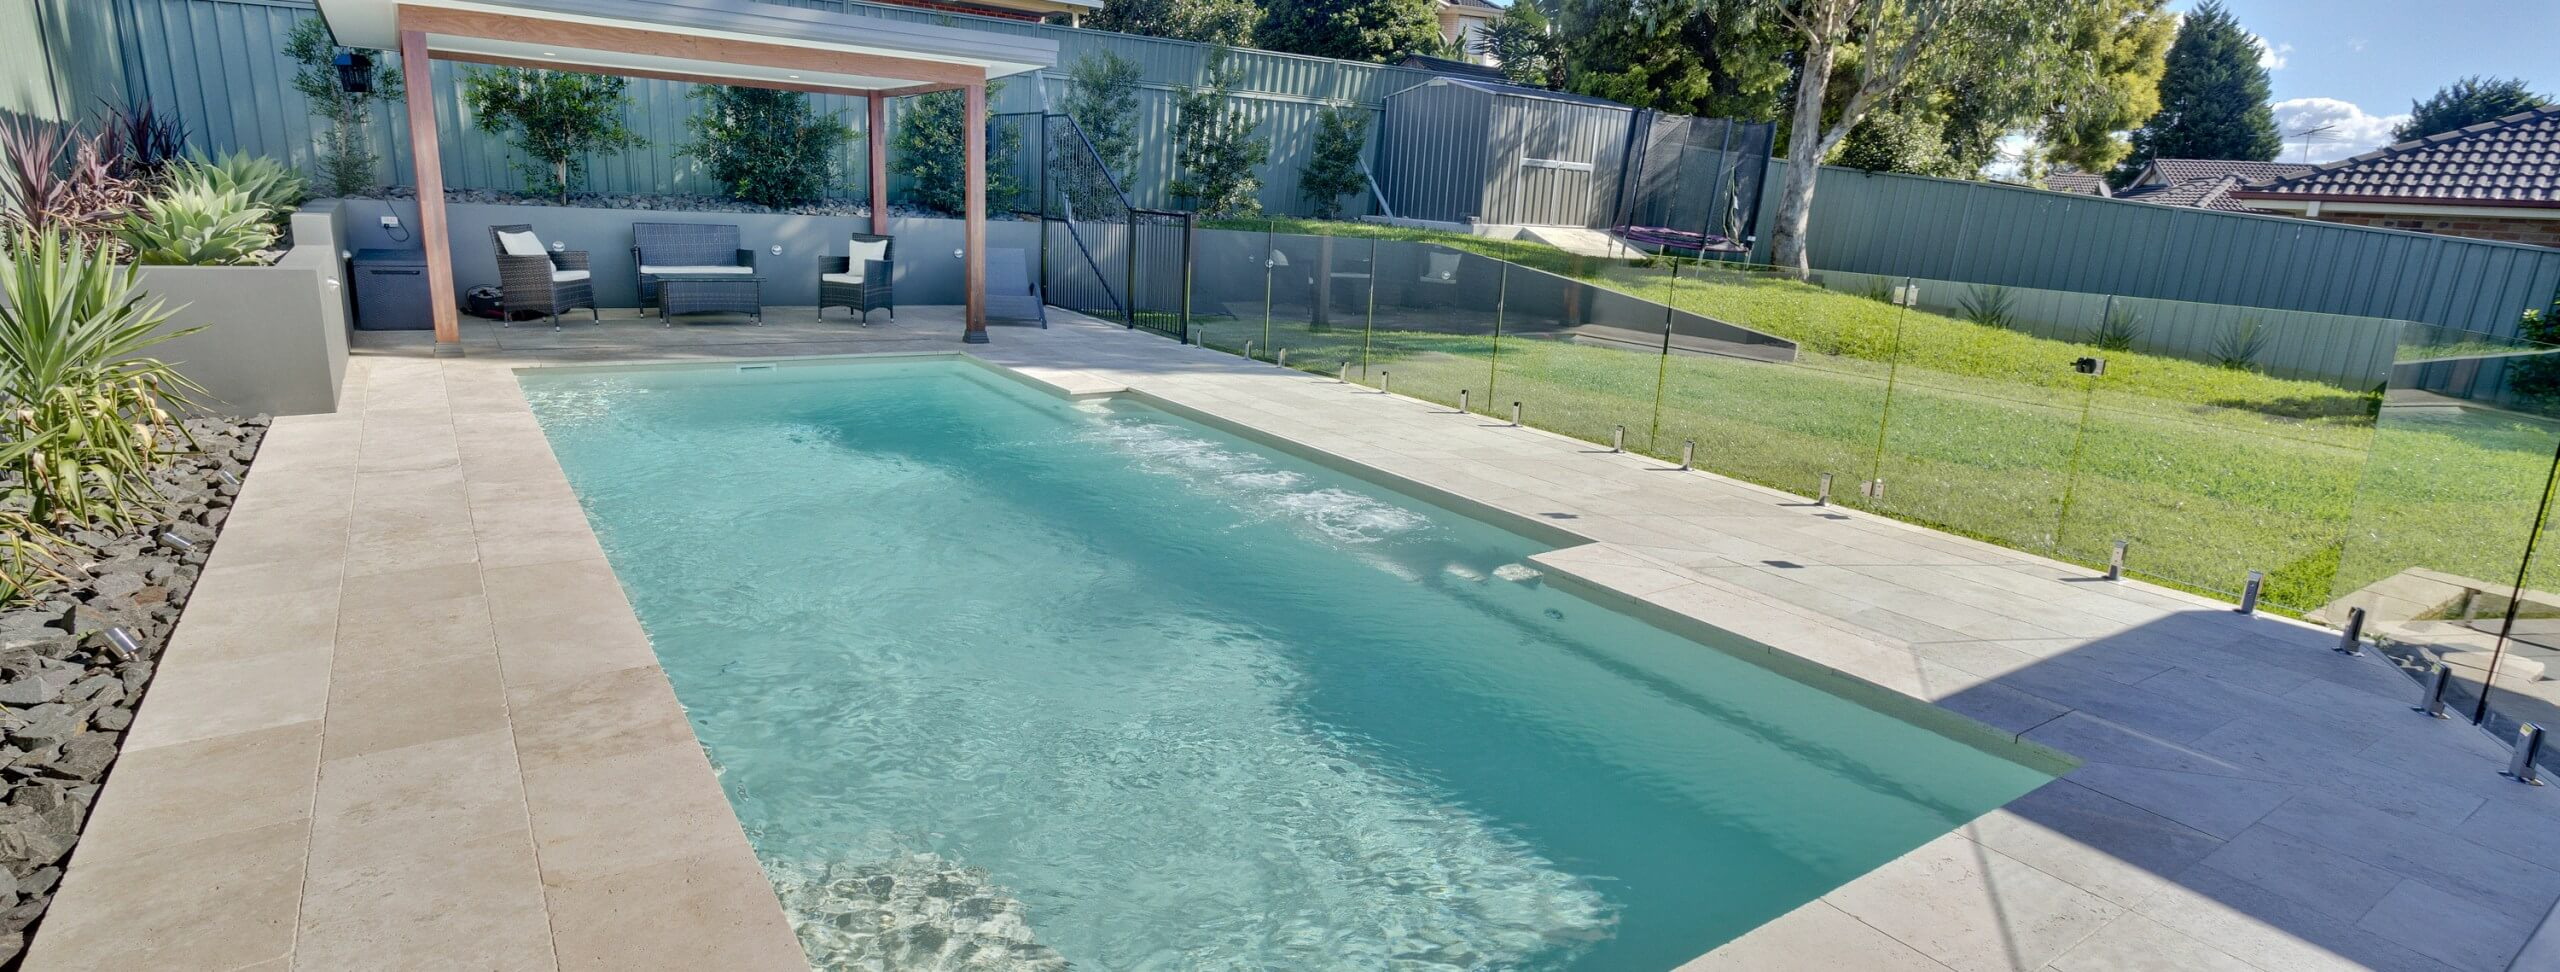 Compass Pools Australia Vogue pool with spa jets on the bench